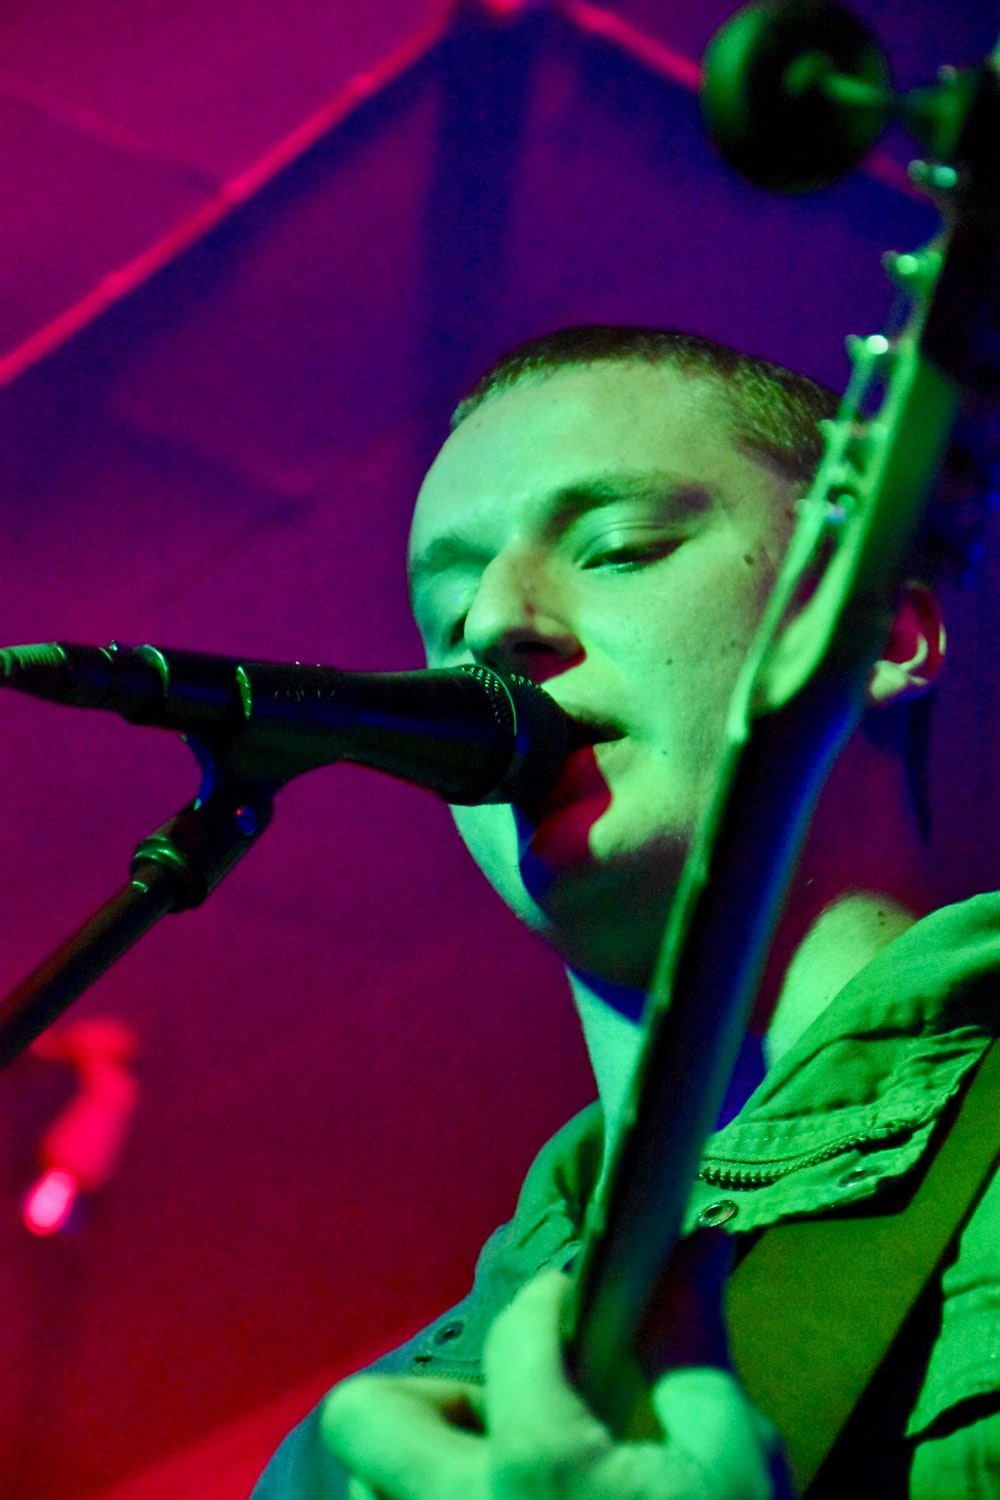 man singing on the stage